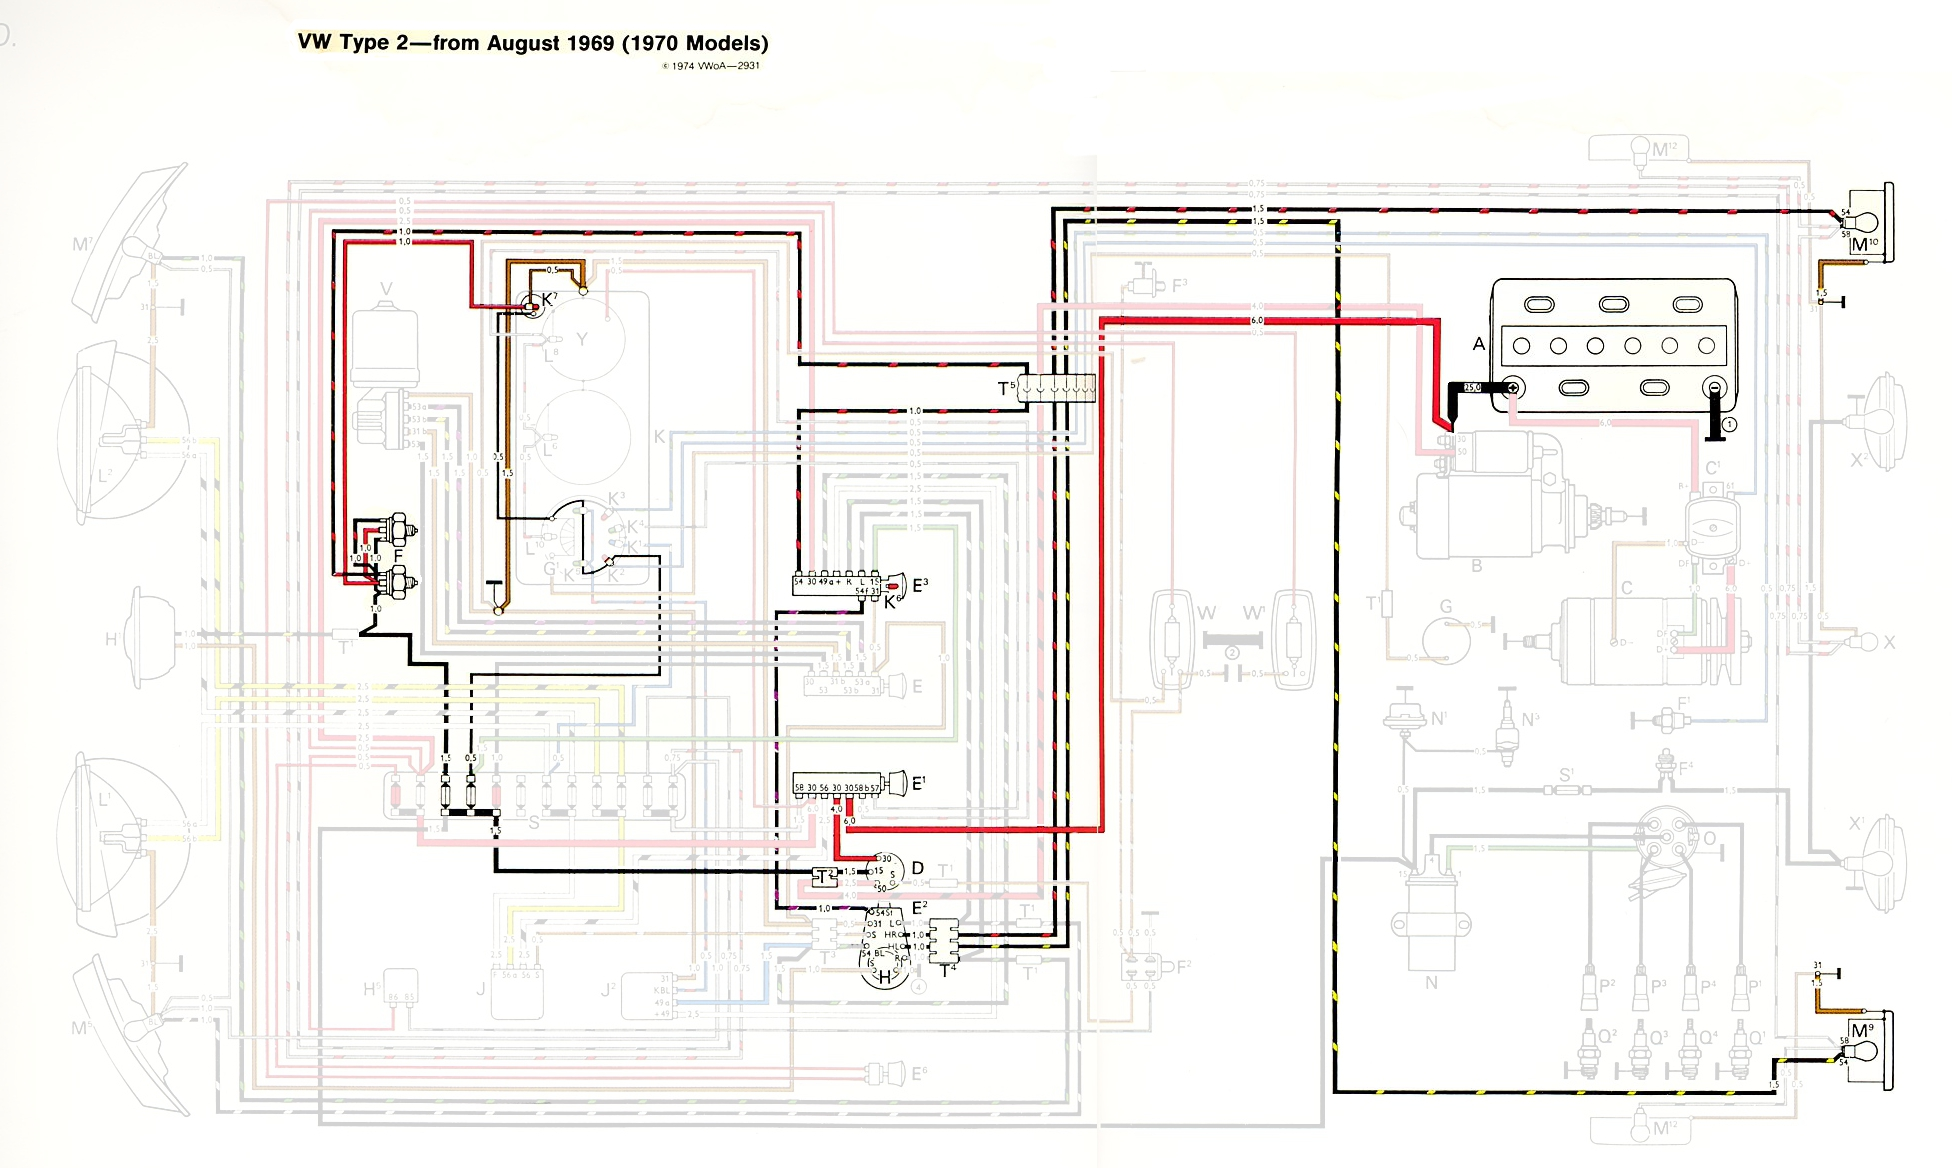 74 Karmann Ghia Wiring Diagram Will Be A Thing Vw Alternator Get Free Image About Weight Convertible